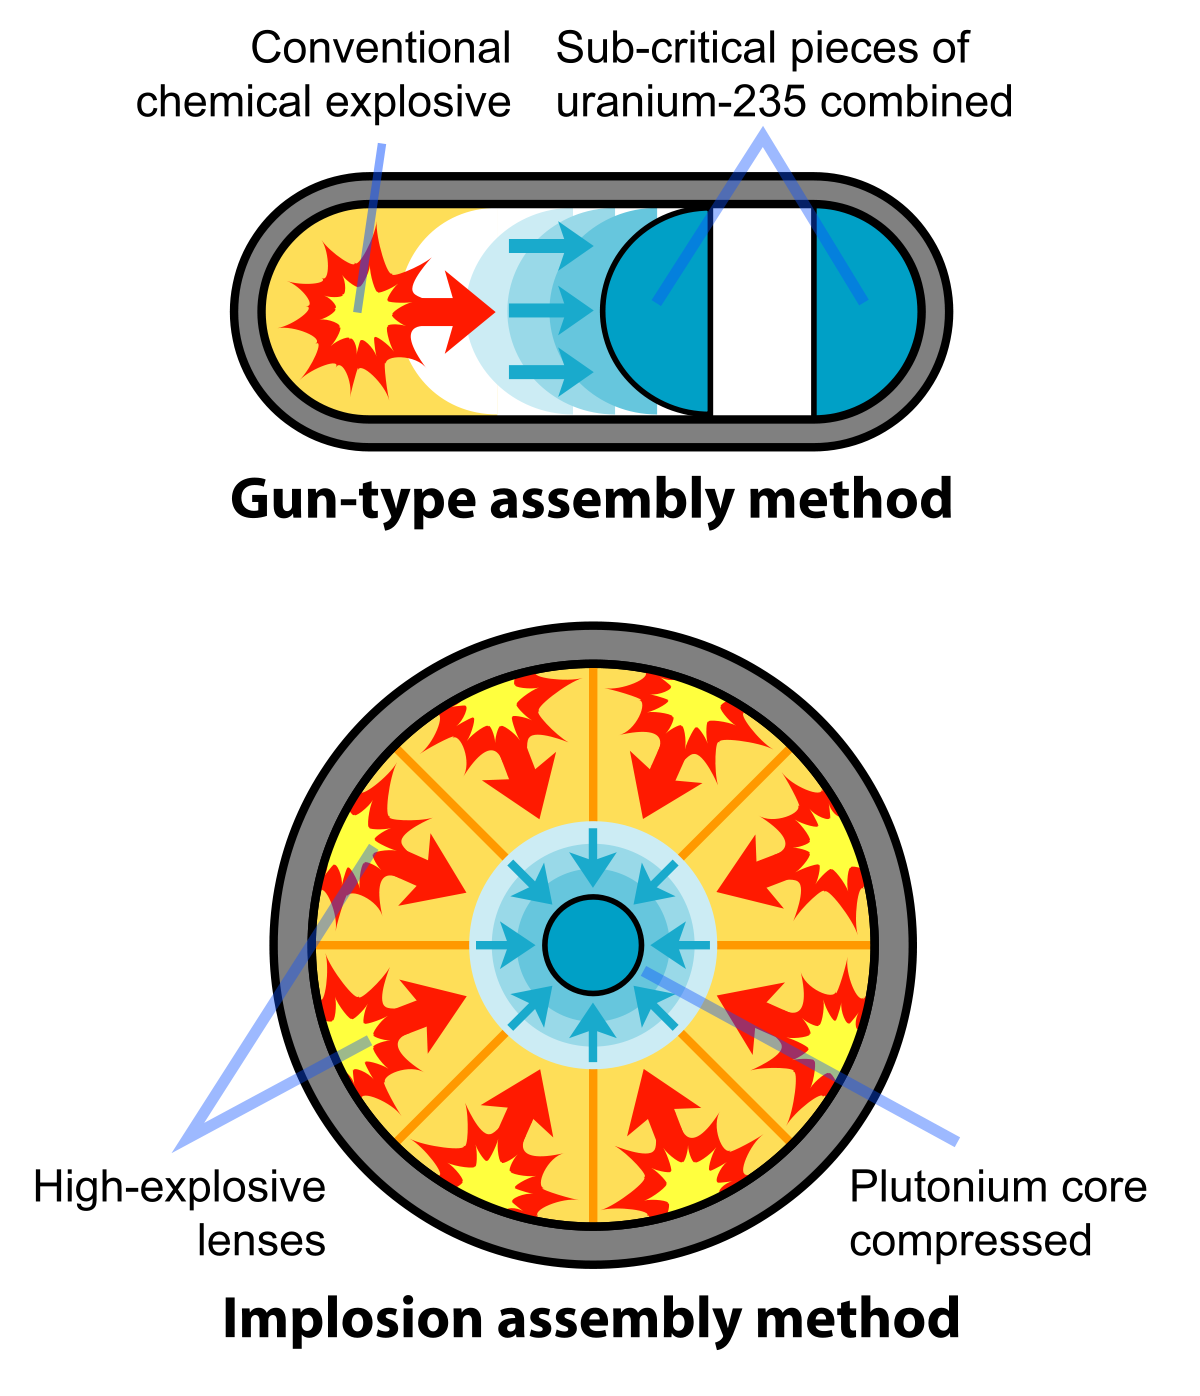 Nuclear drawing warhead. Weapon design wikimedia commons